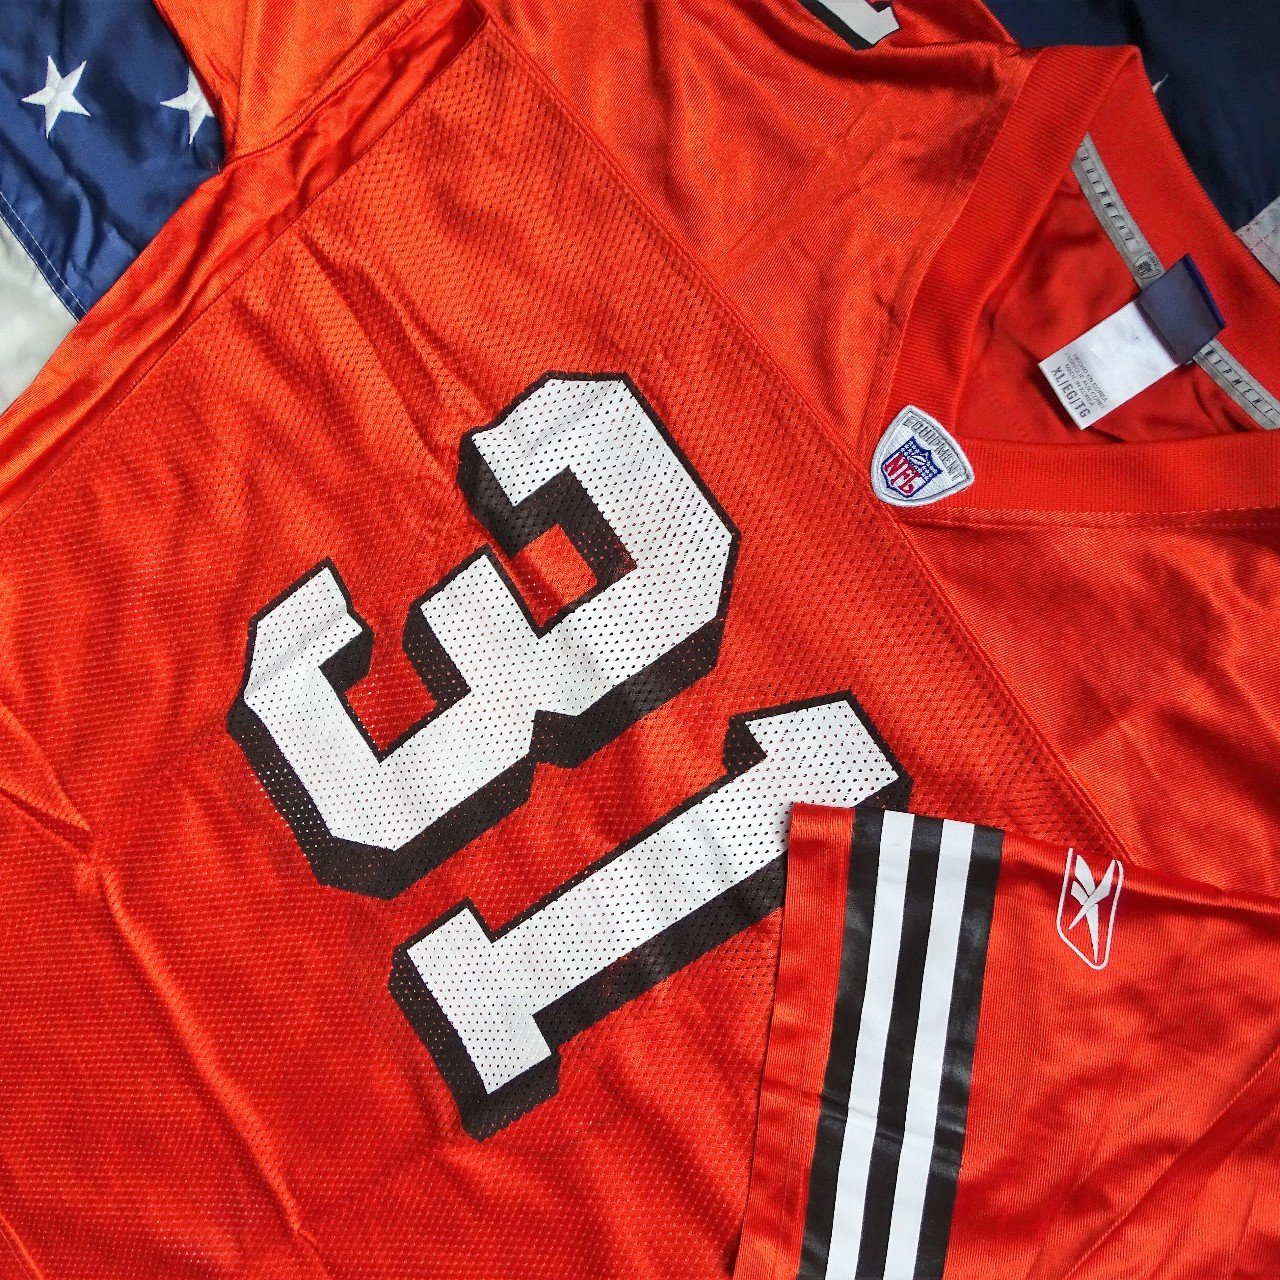 eee7a6045 Vintage William Green Cleveland Browns jersey by XL. No The - Depop